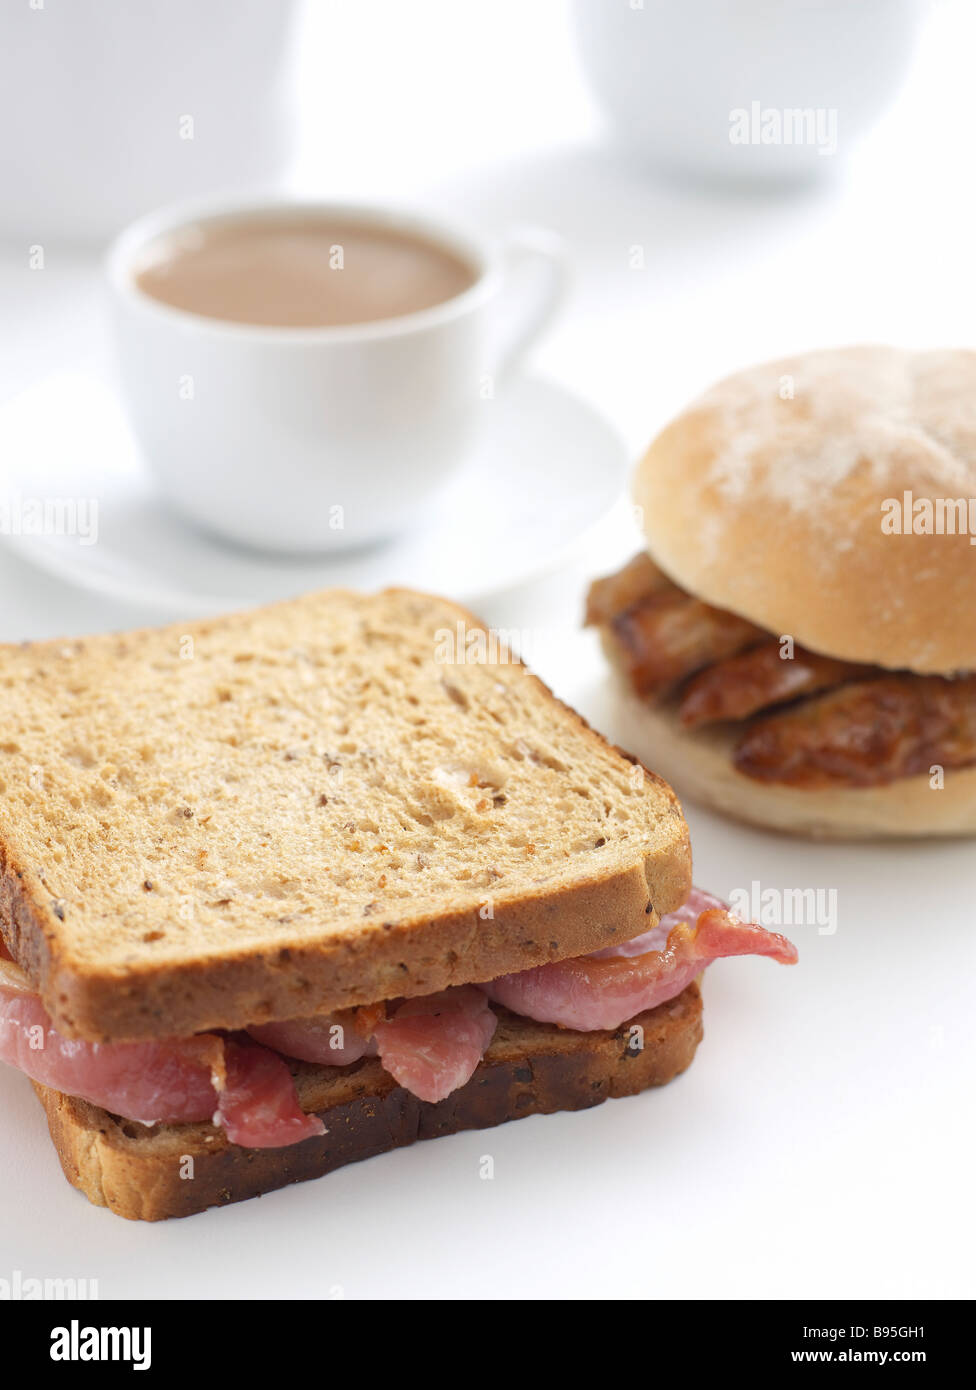 bacon sandwich and sausage bap Stock Photo